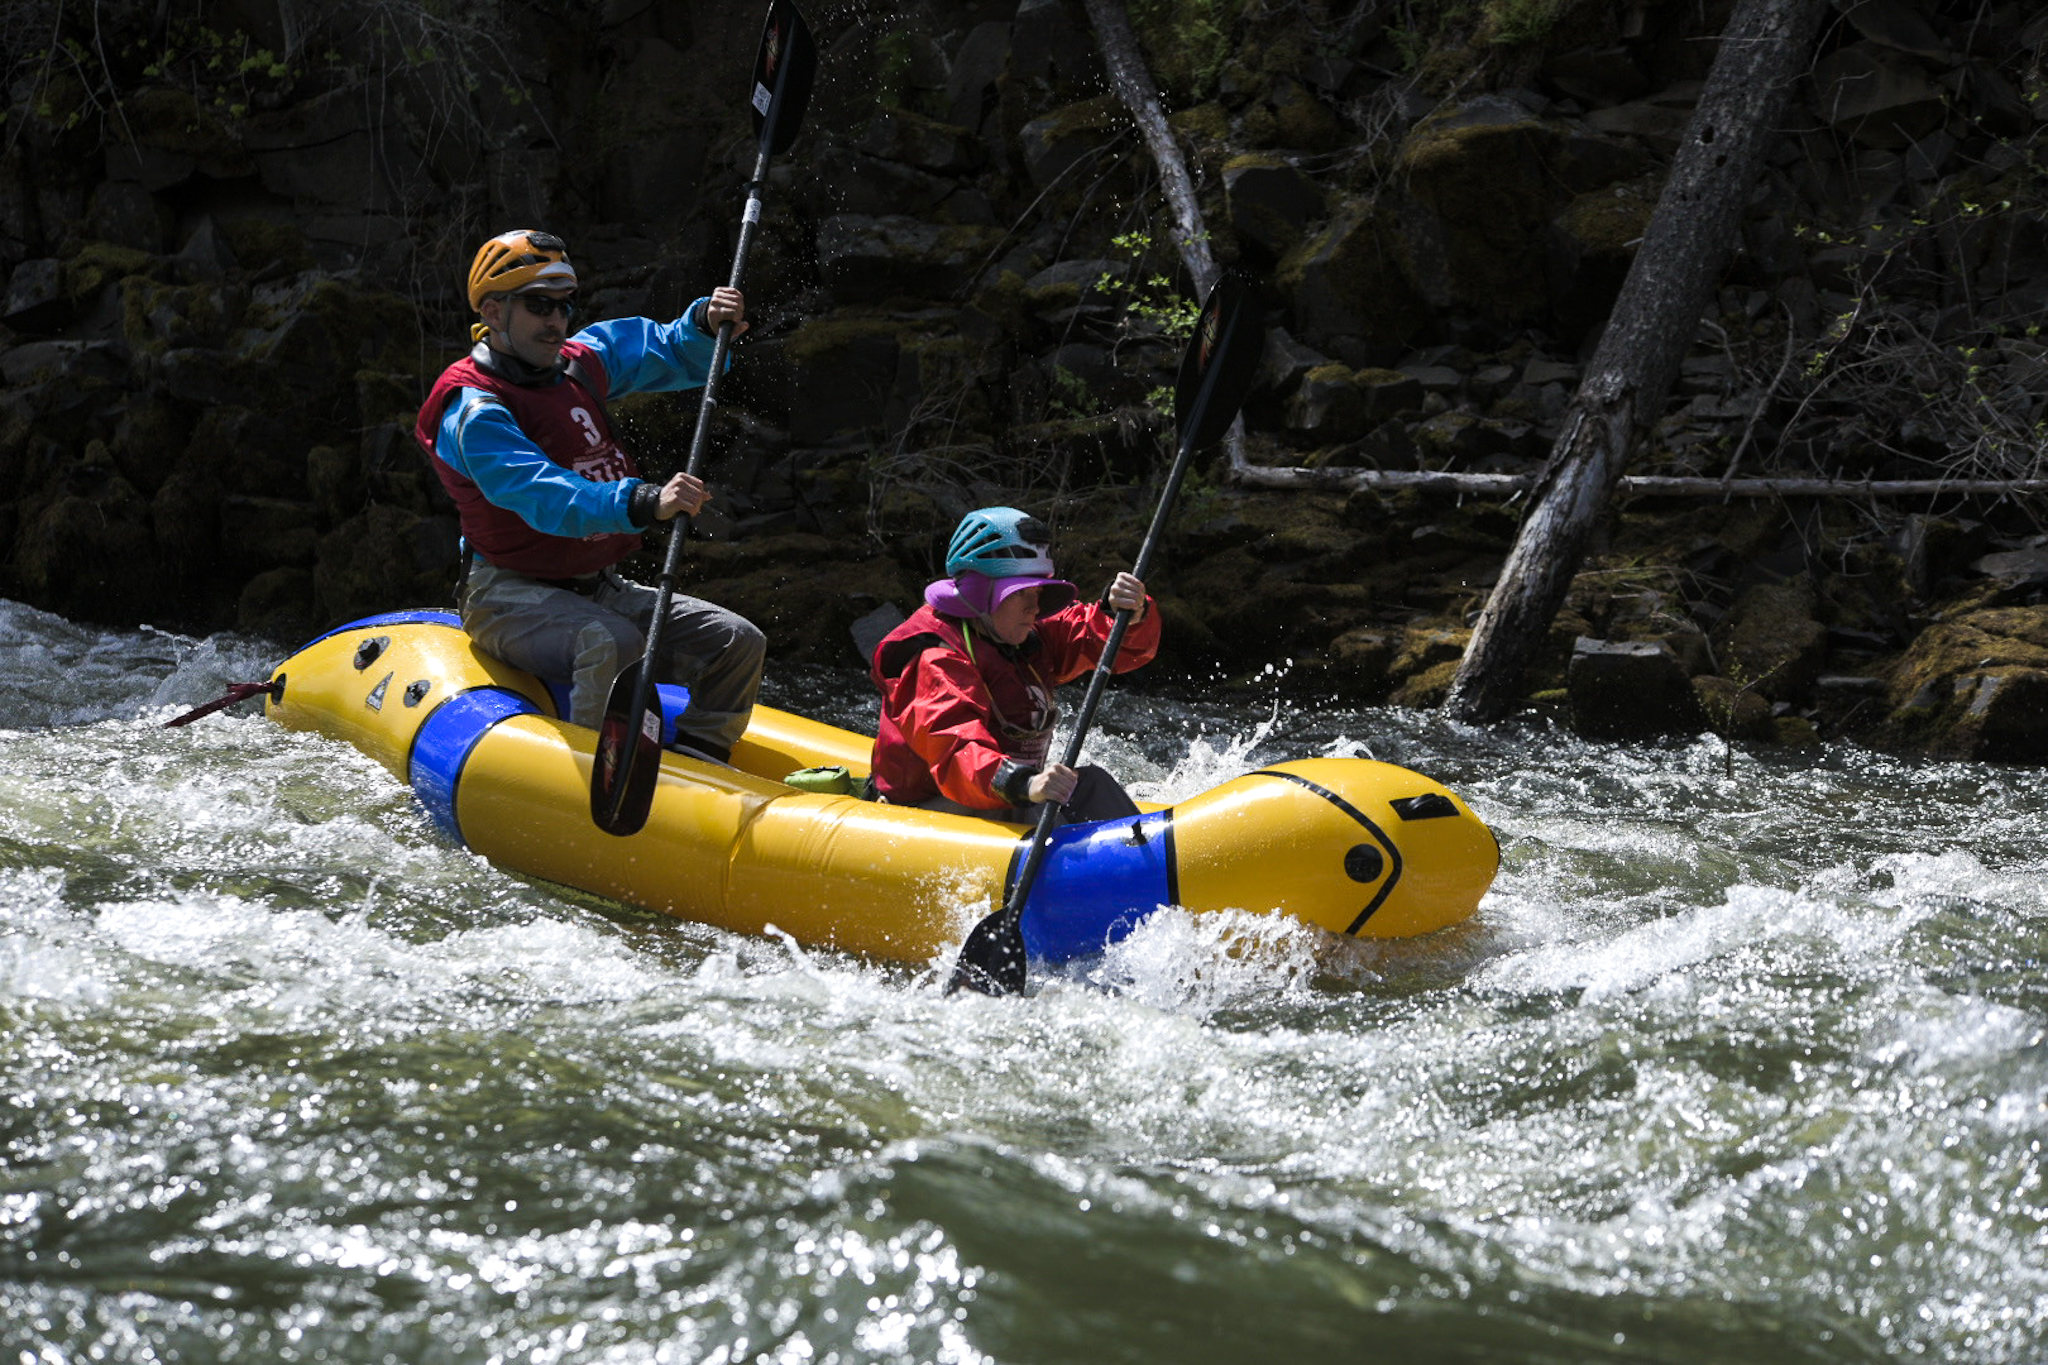 Pack rafting at Expedition Oregon